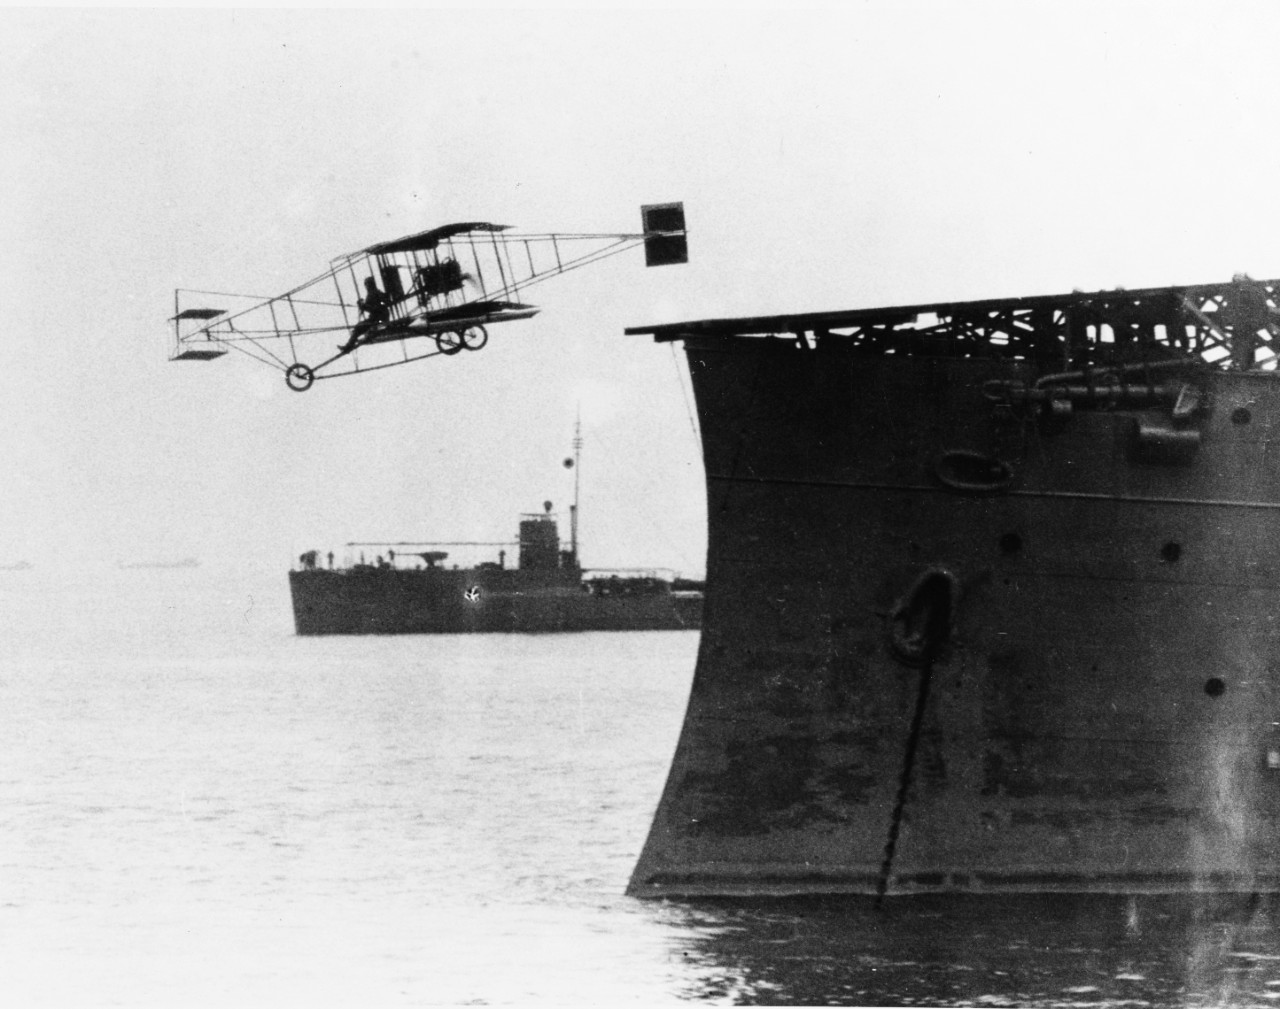 Eugene B. Ely flies his Curtiss pusher airplane from USS Birmingham (Scout Cruiser # 2), in Hampton Roads, Virginia, during the afternoon of 14 November 1910. USS Roe (Destroyer # 24), serving as plane guard, is visible in the background. Photograph from the Eugene B. Ely scrapbook collection, S-005.